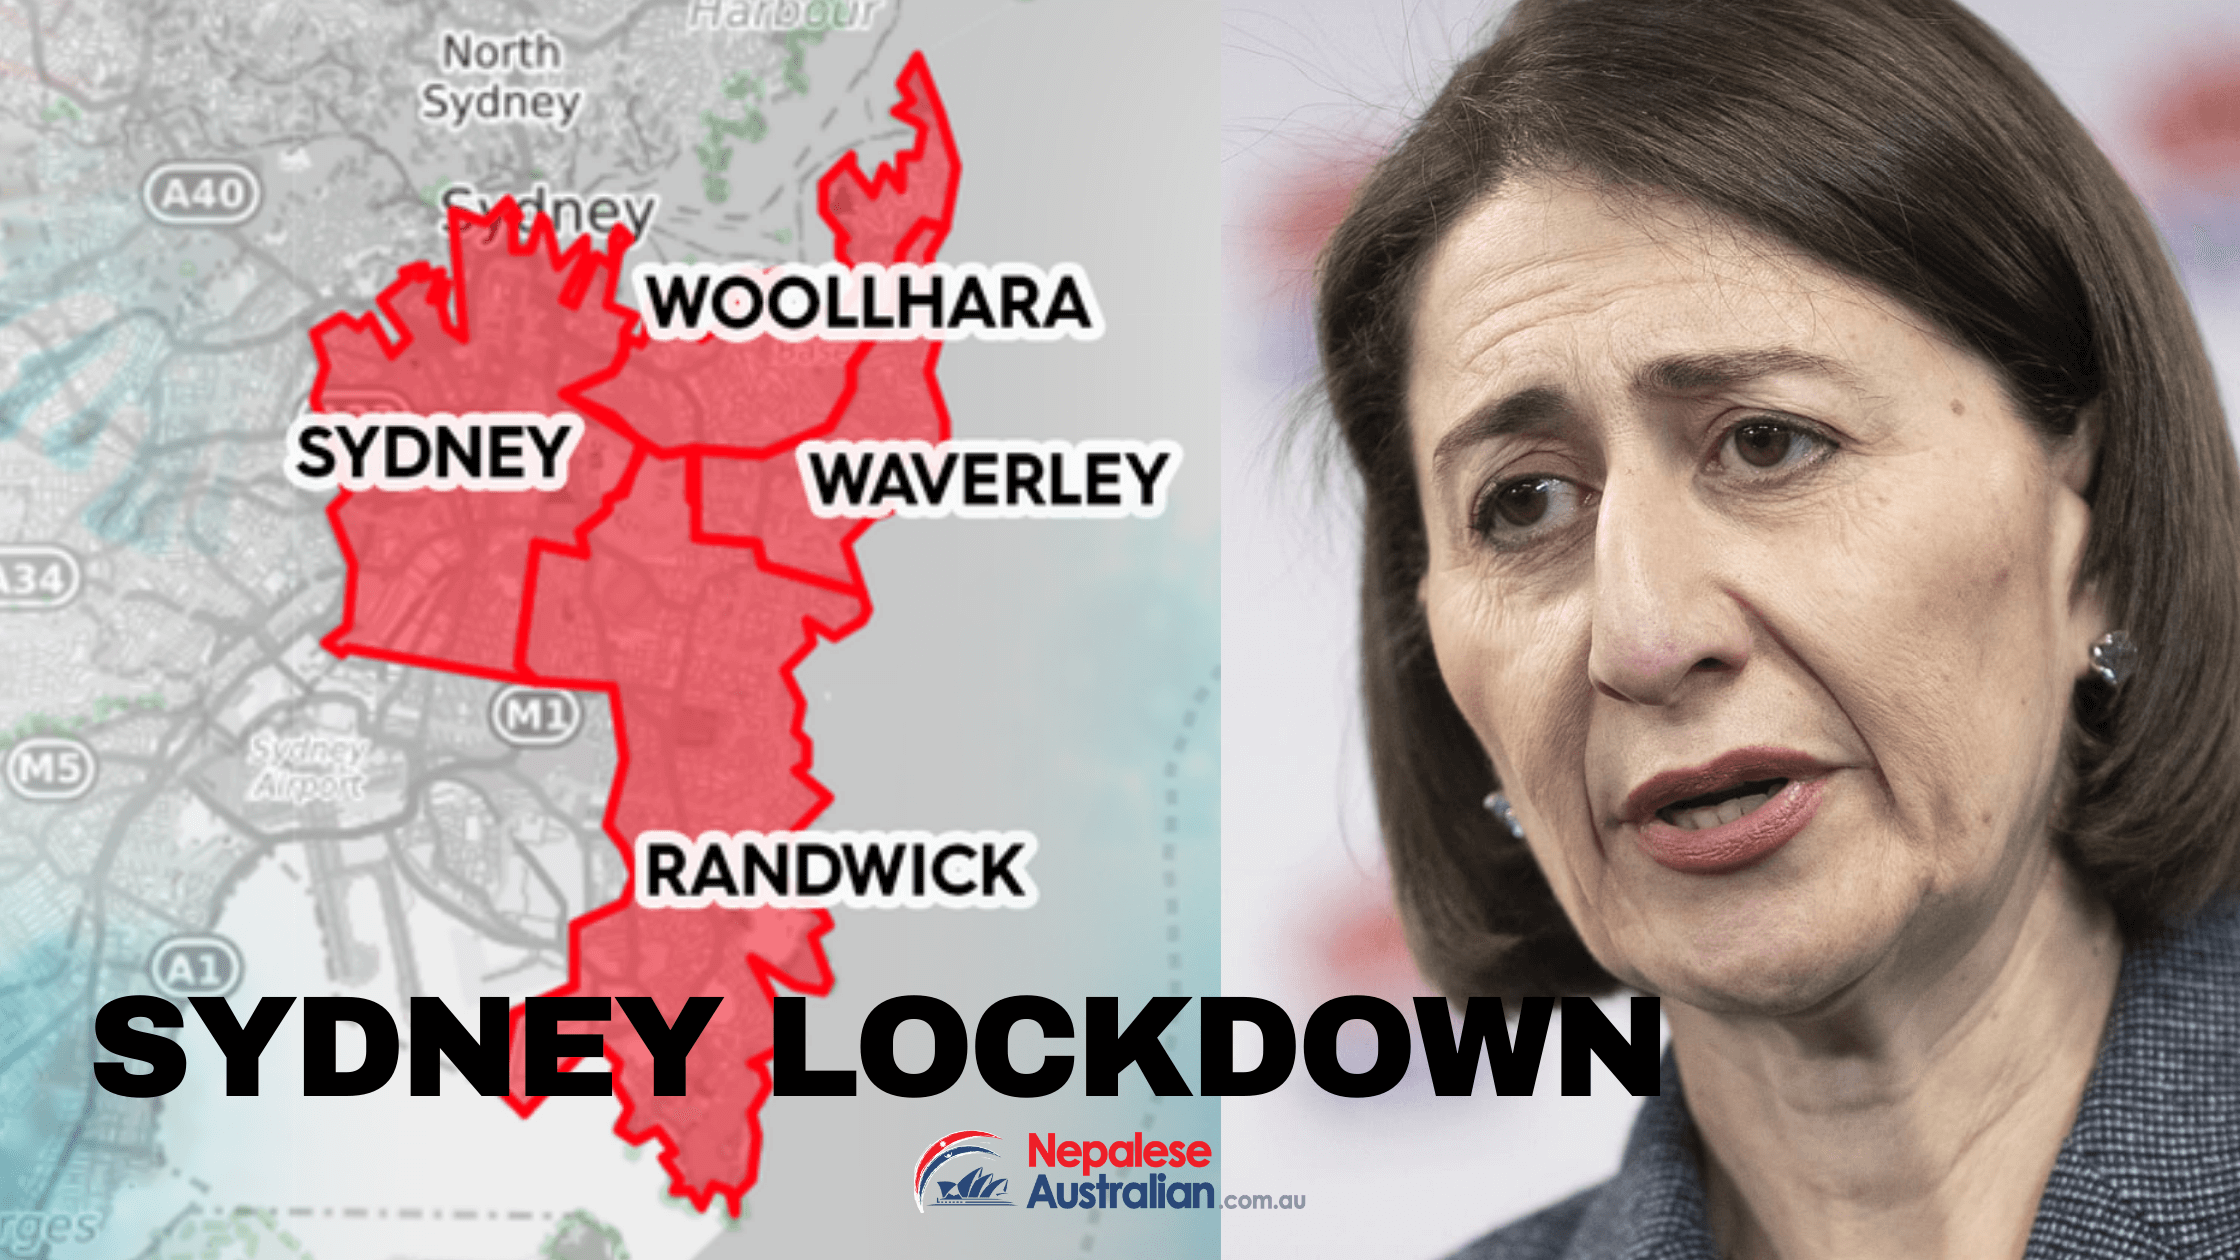 COVID-19 lockdown restrictions have been announced for four Sydney LGAs